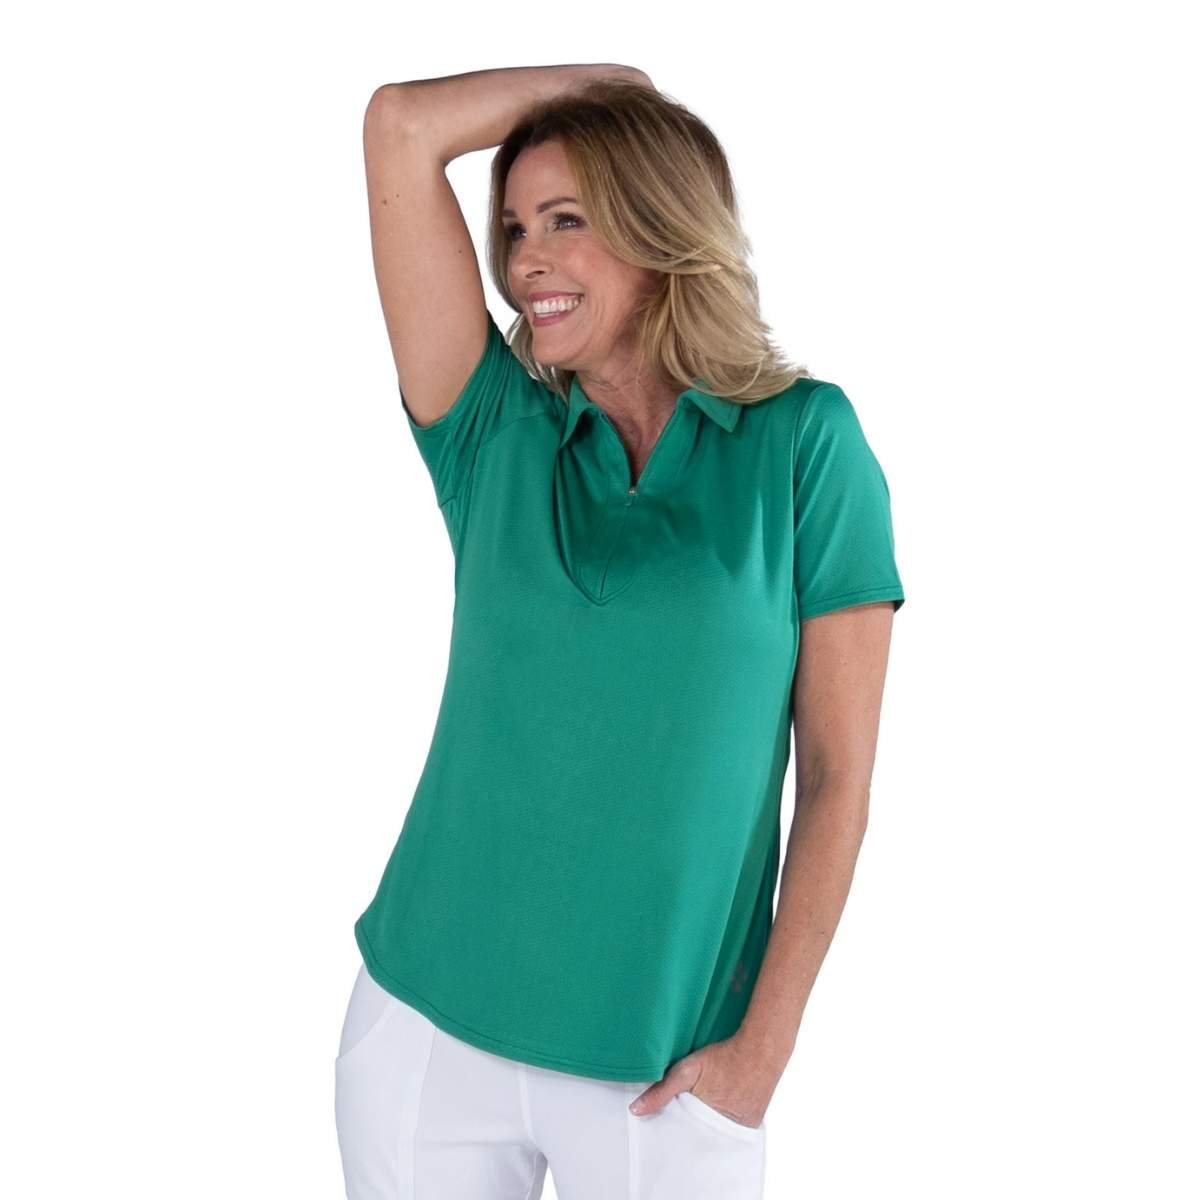 Jofit Women's Emerald Performance Polo